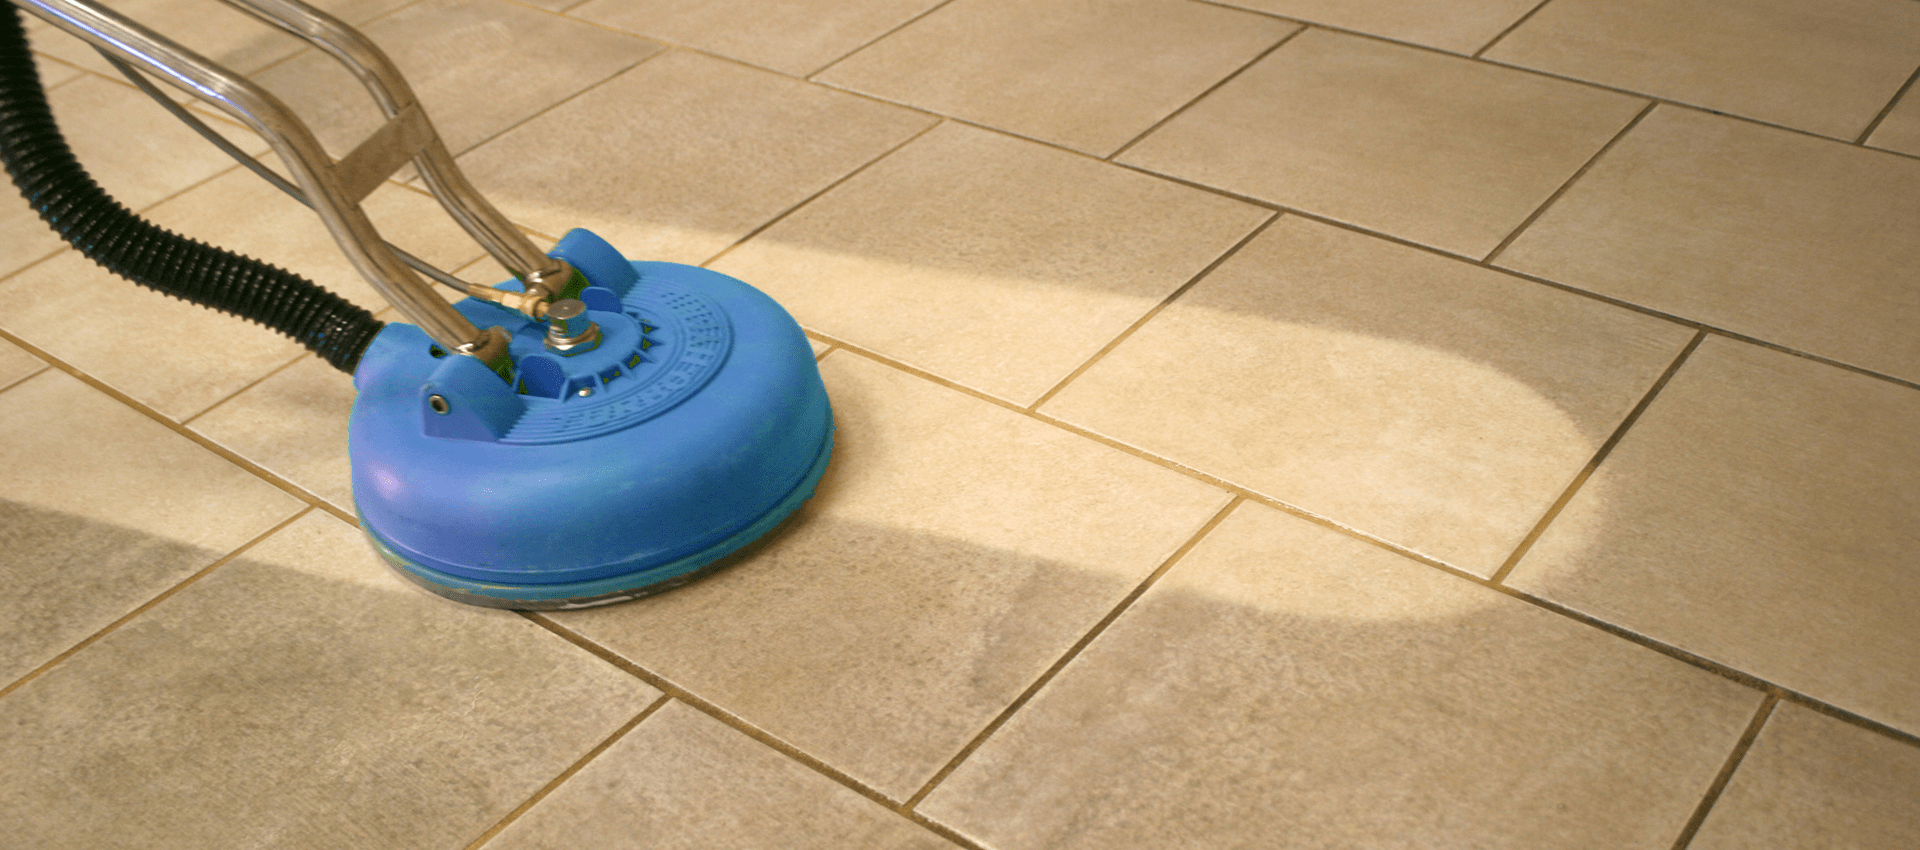 how to clean floor grout without scrubbing 84893